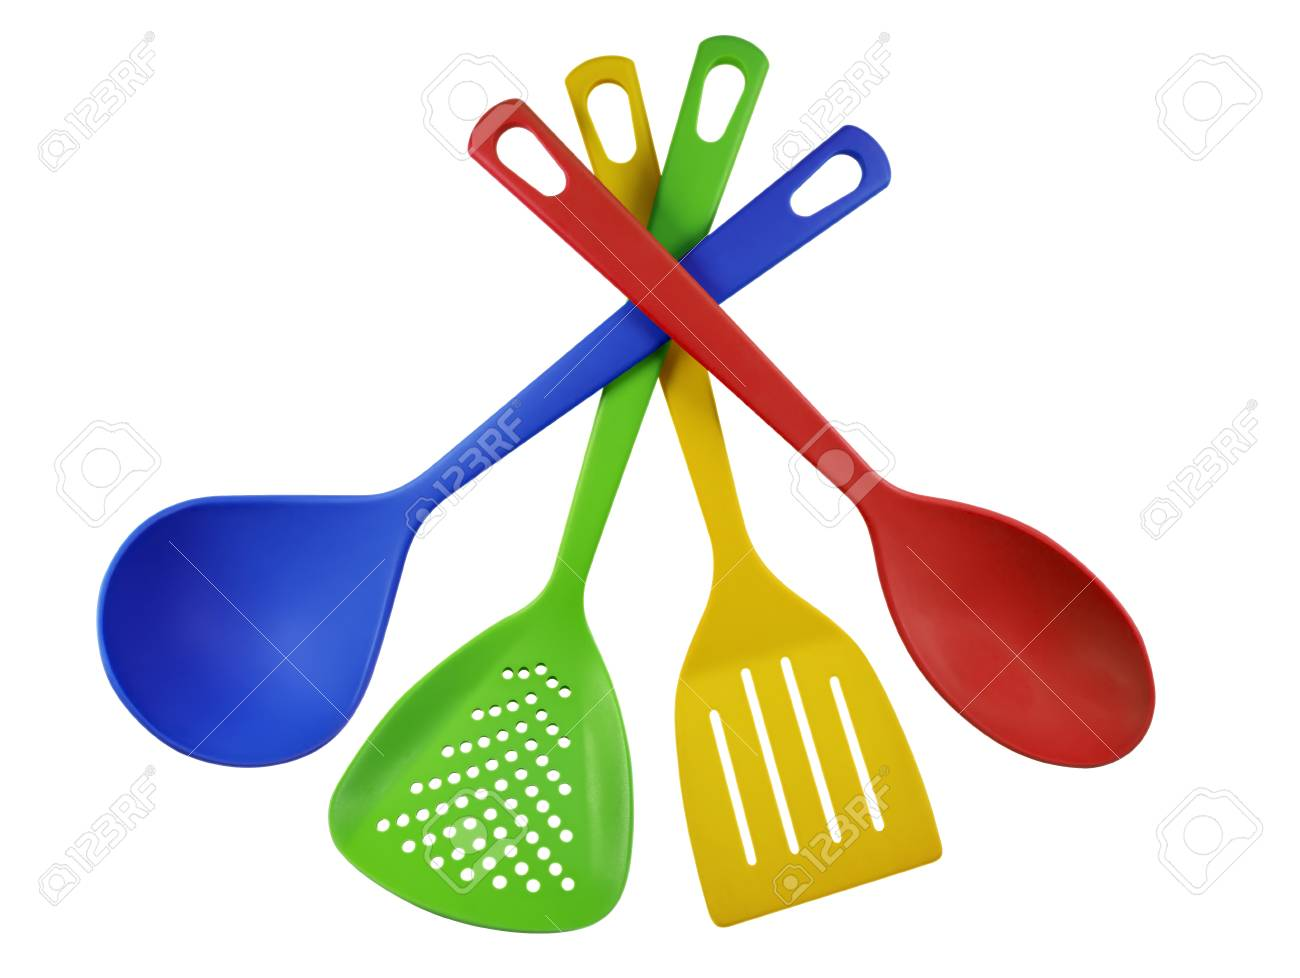 Colorful Plastic Kitchen Utensils Isolated On White. Stock Photo   55296398